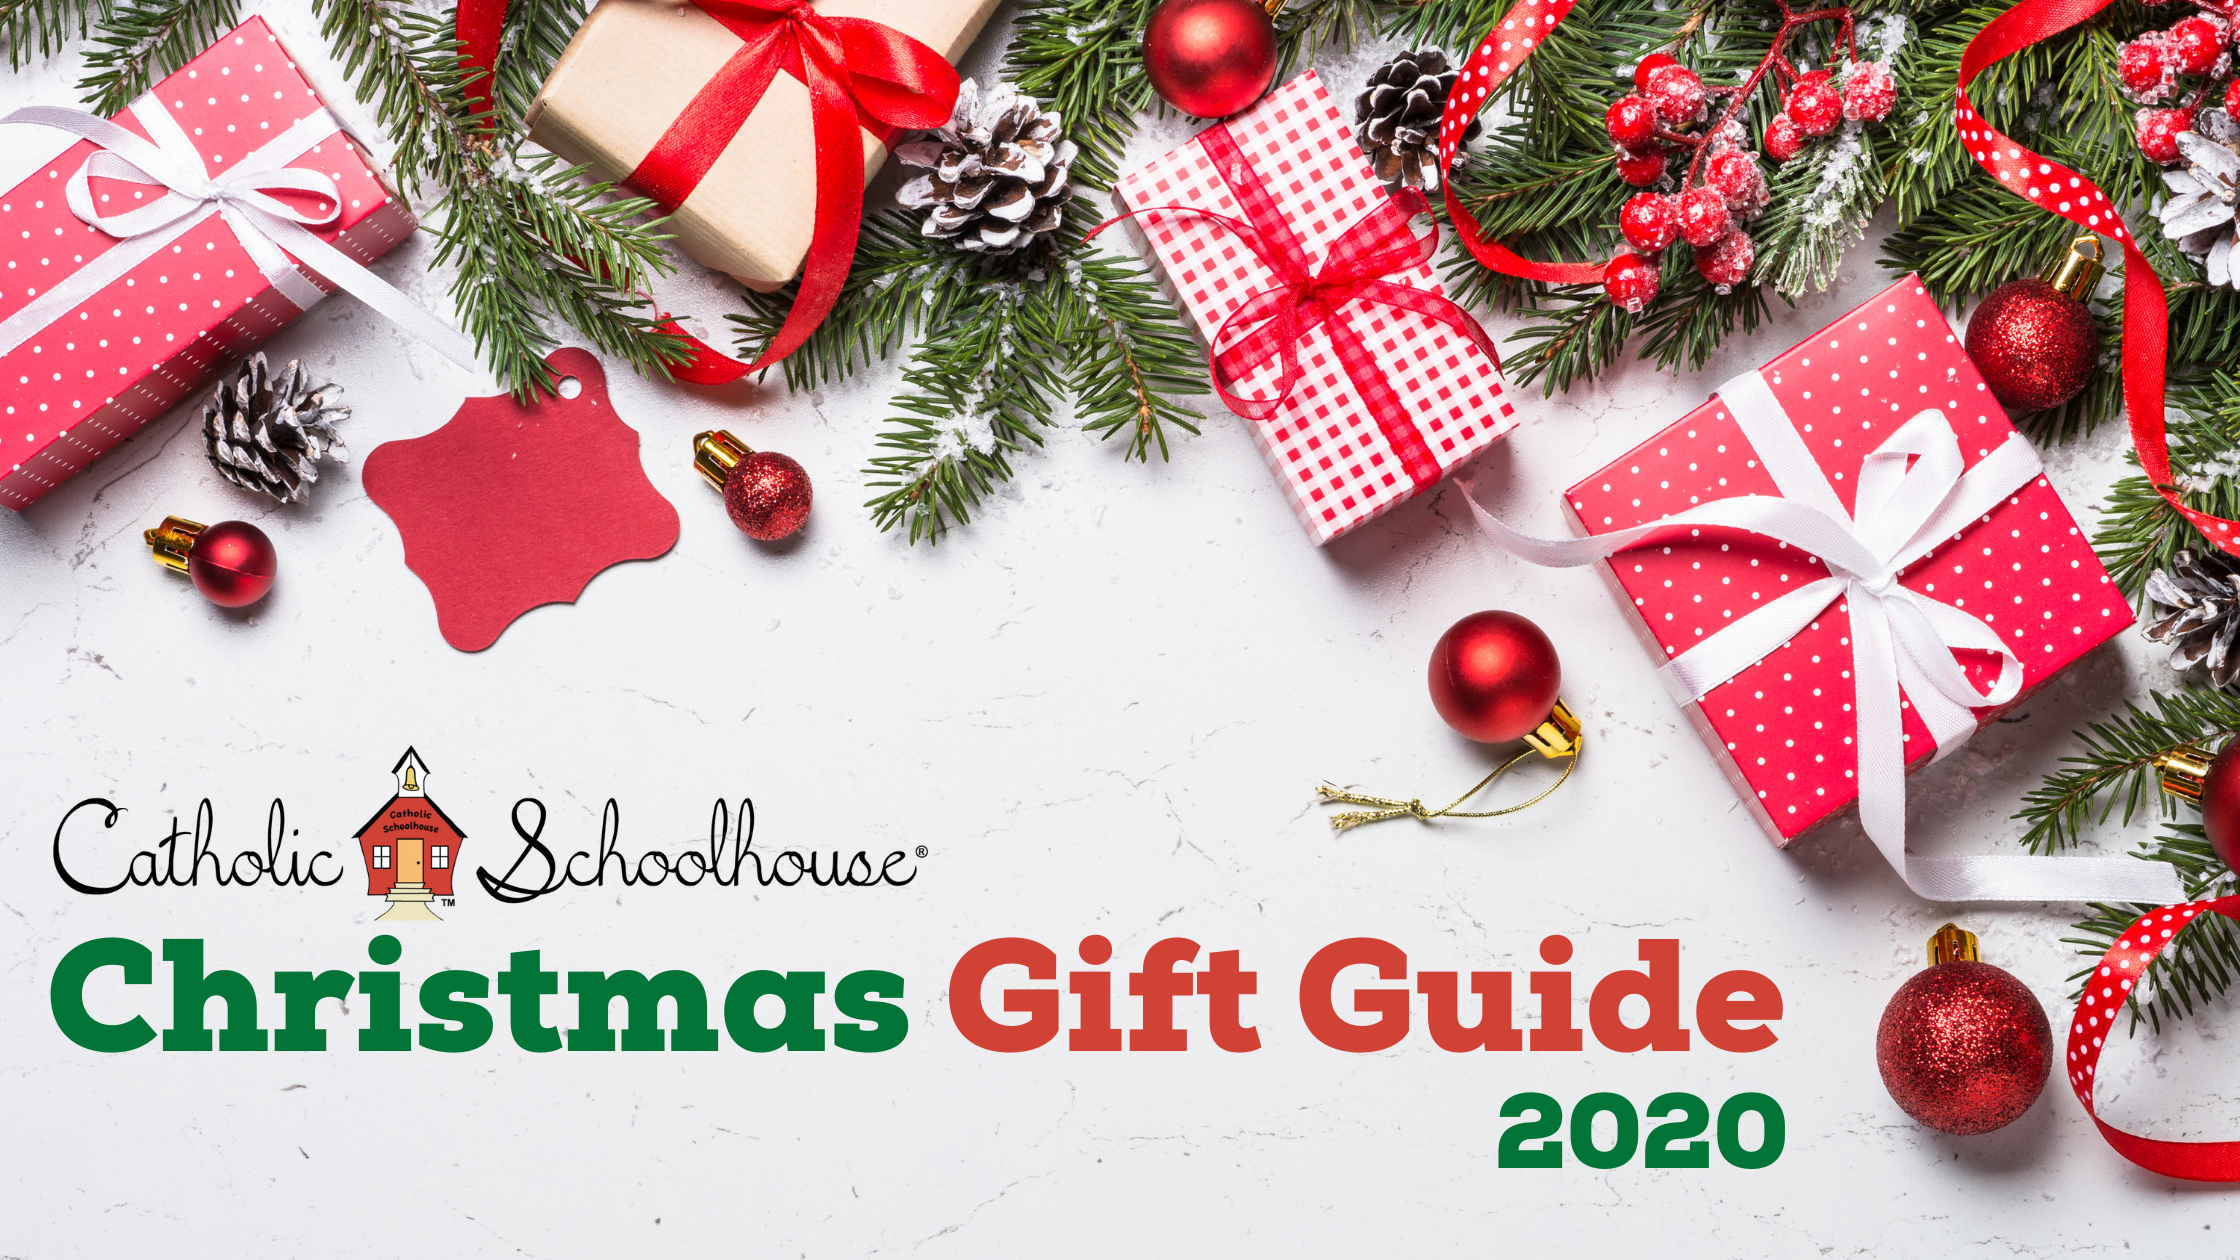 Catholic Schoolhouse Christmas Gift Guide 2020